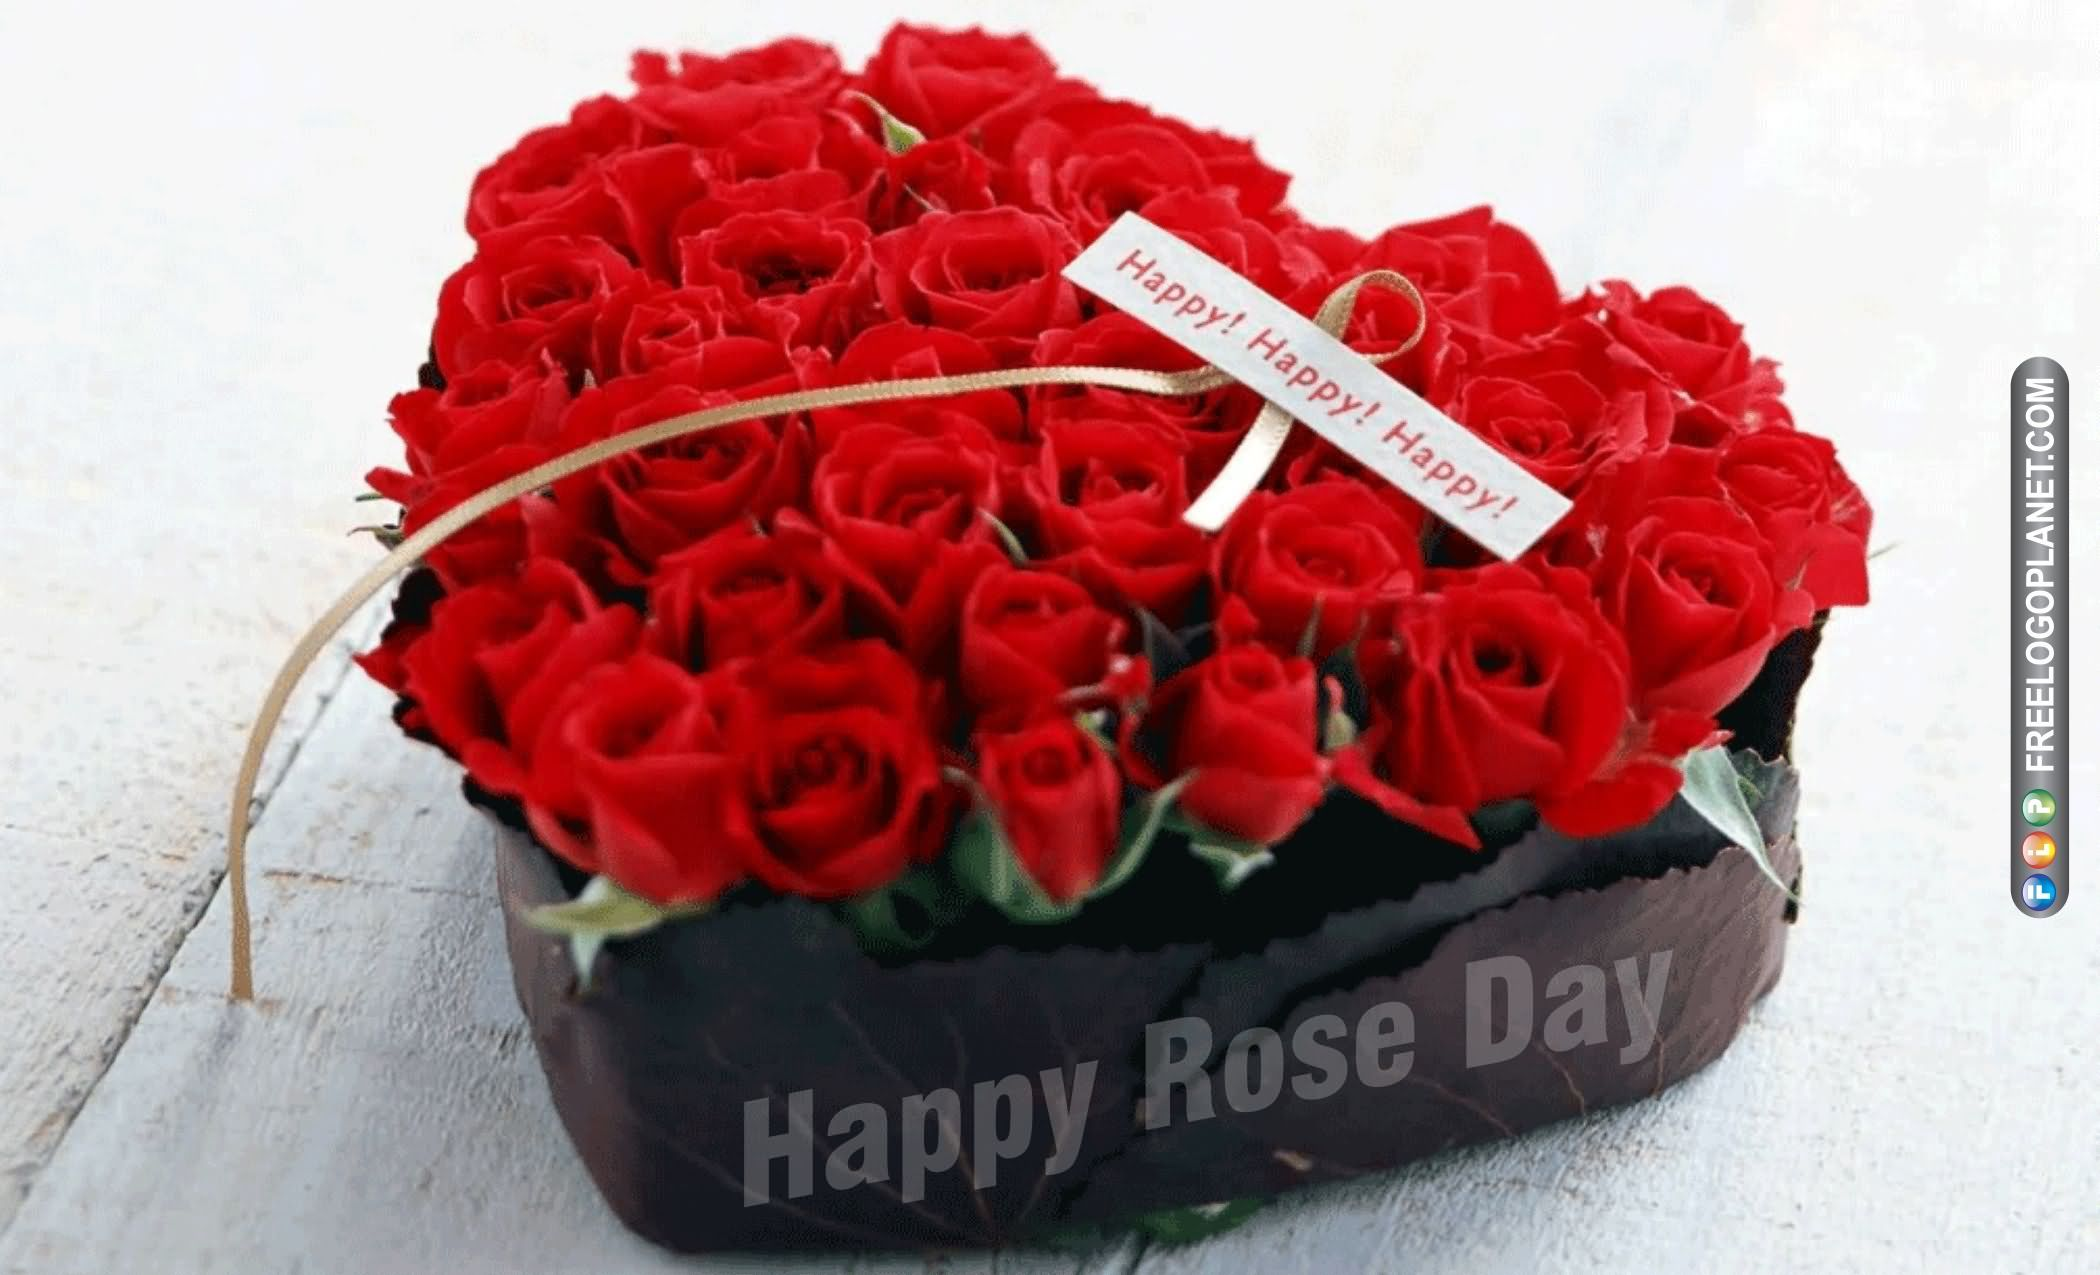 Happy Rose Day Heart Roses Picture